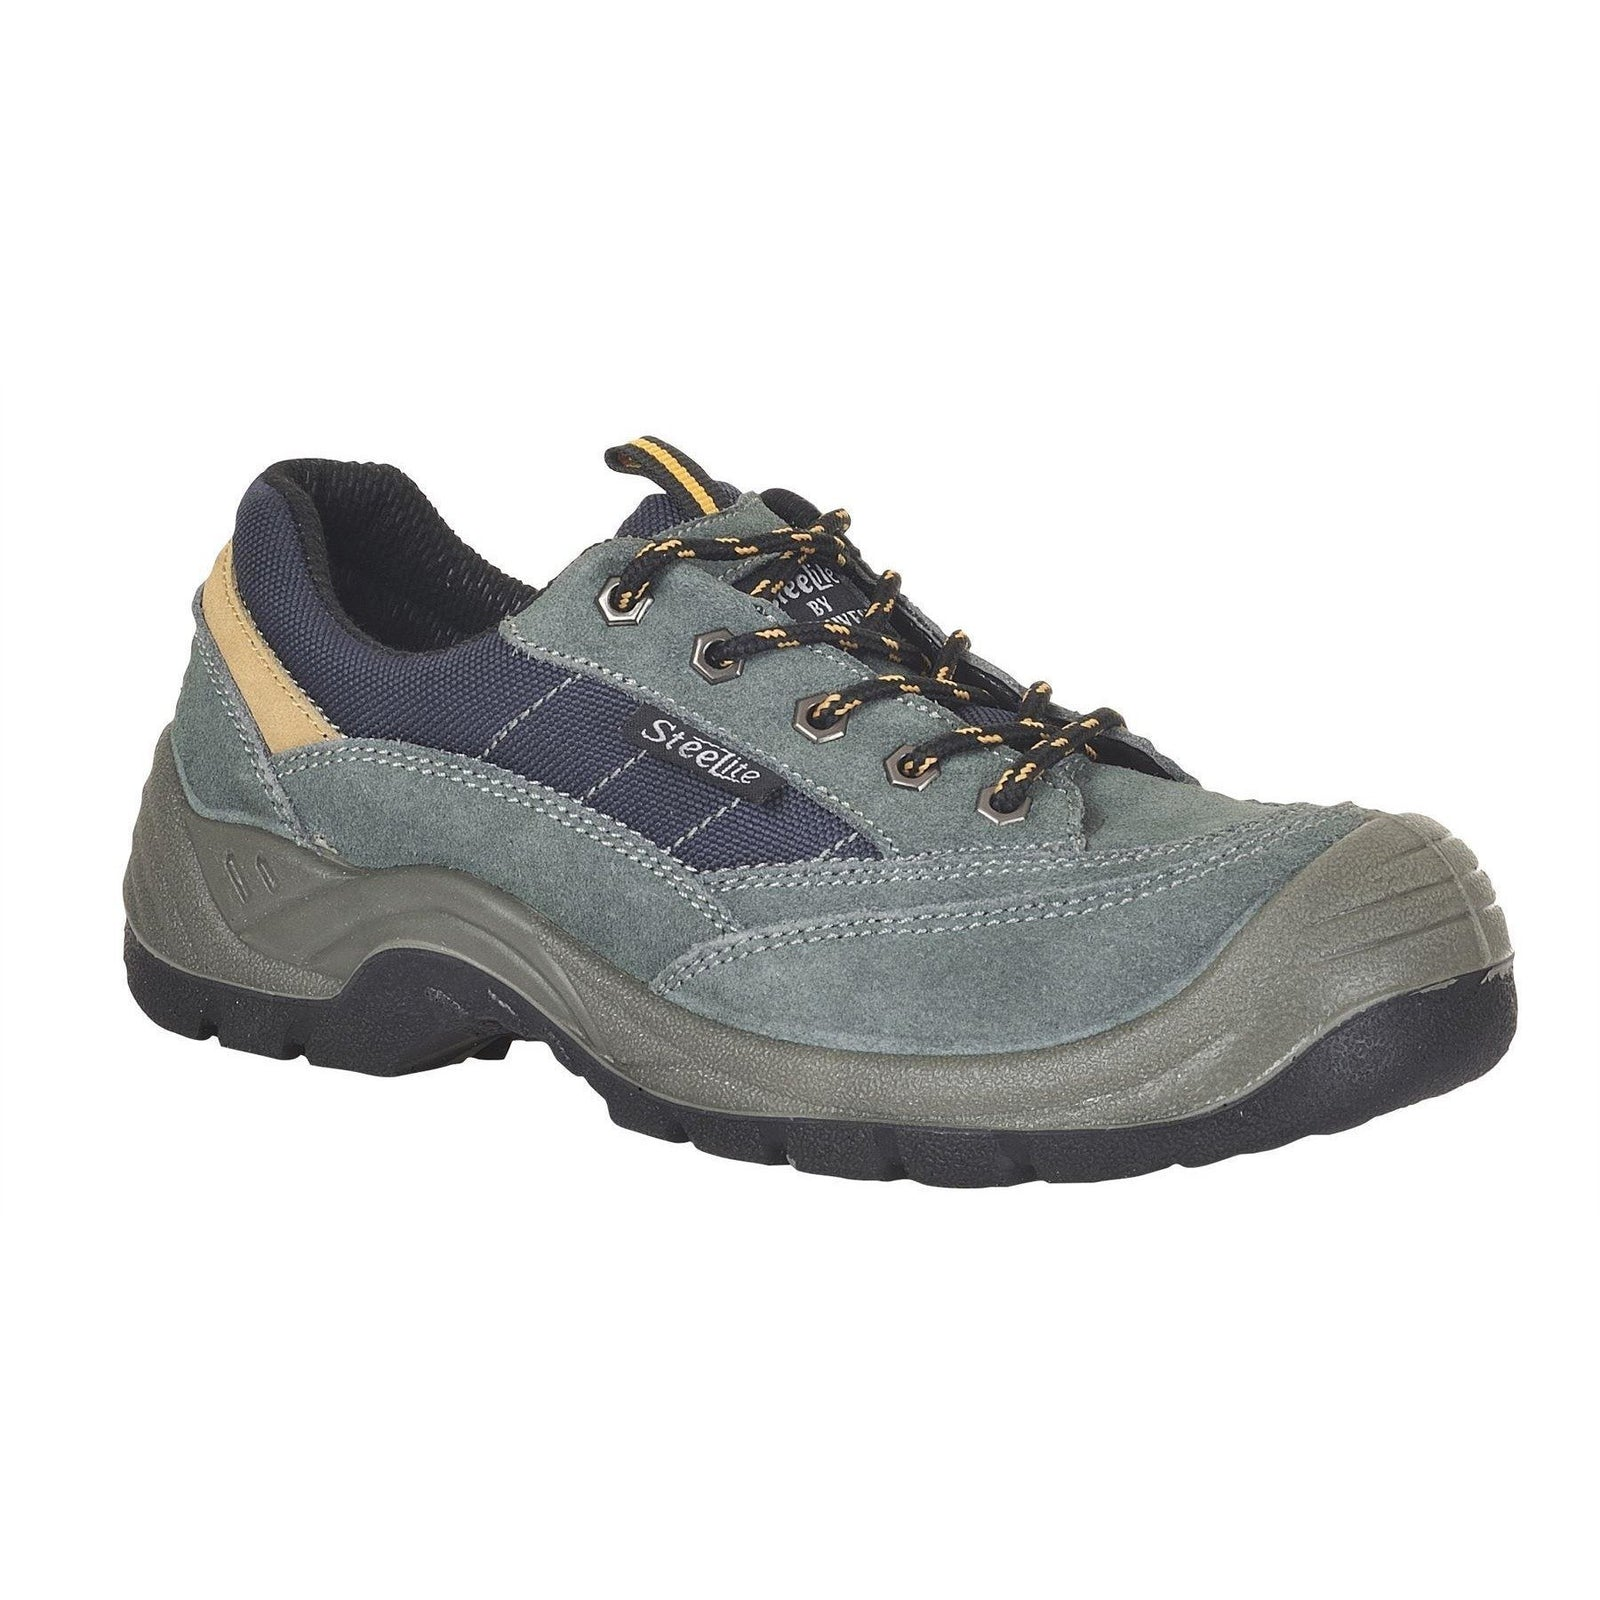 Portwest Steelite Hiker Shoe S1P FW61 - reid outdoors